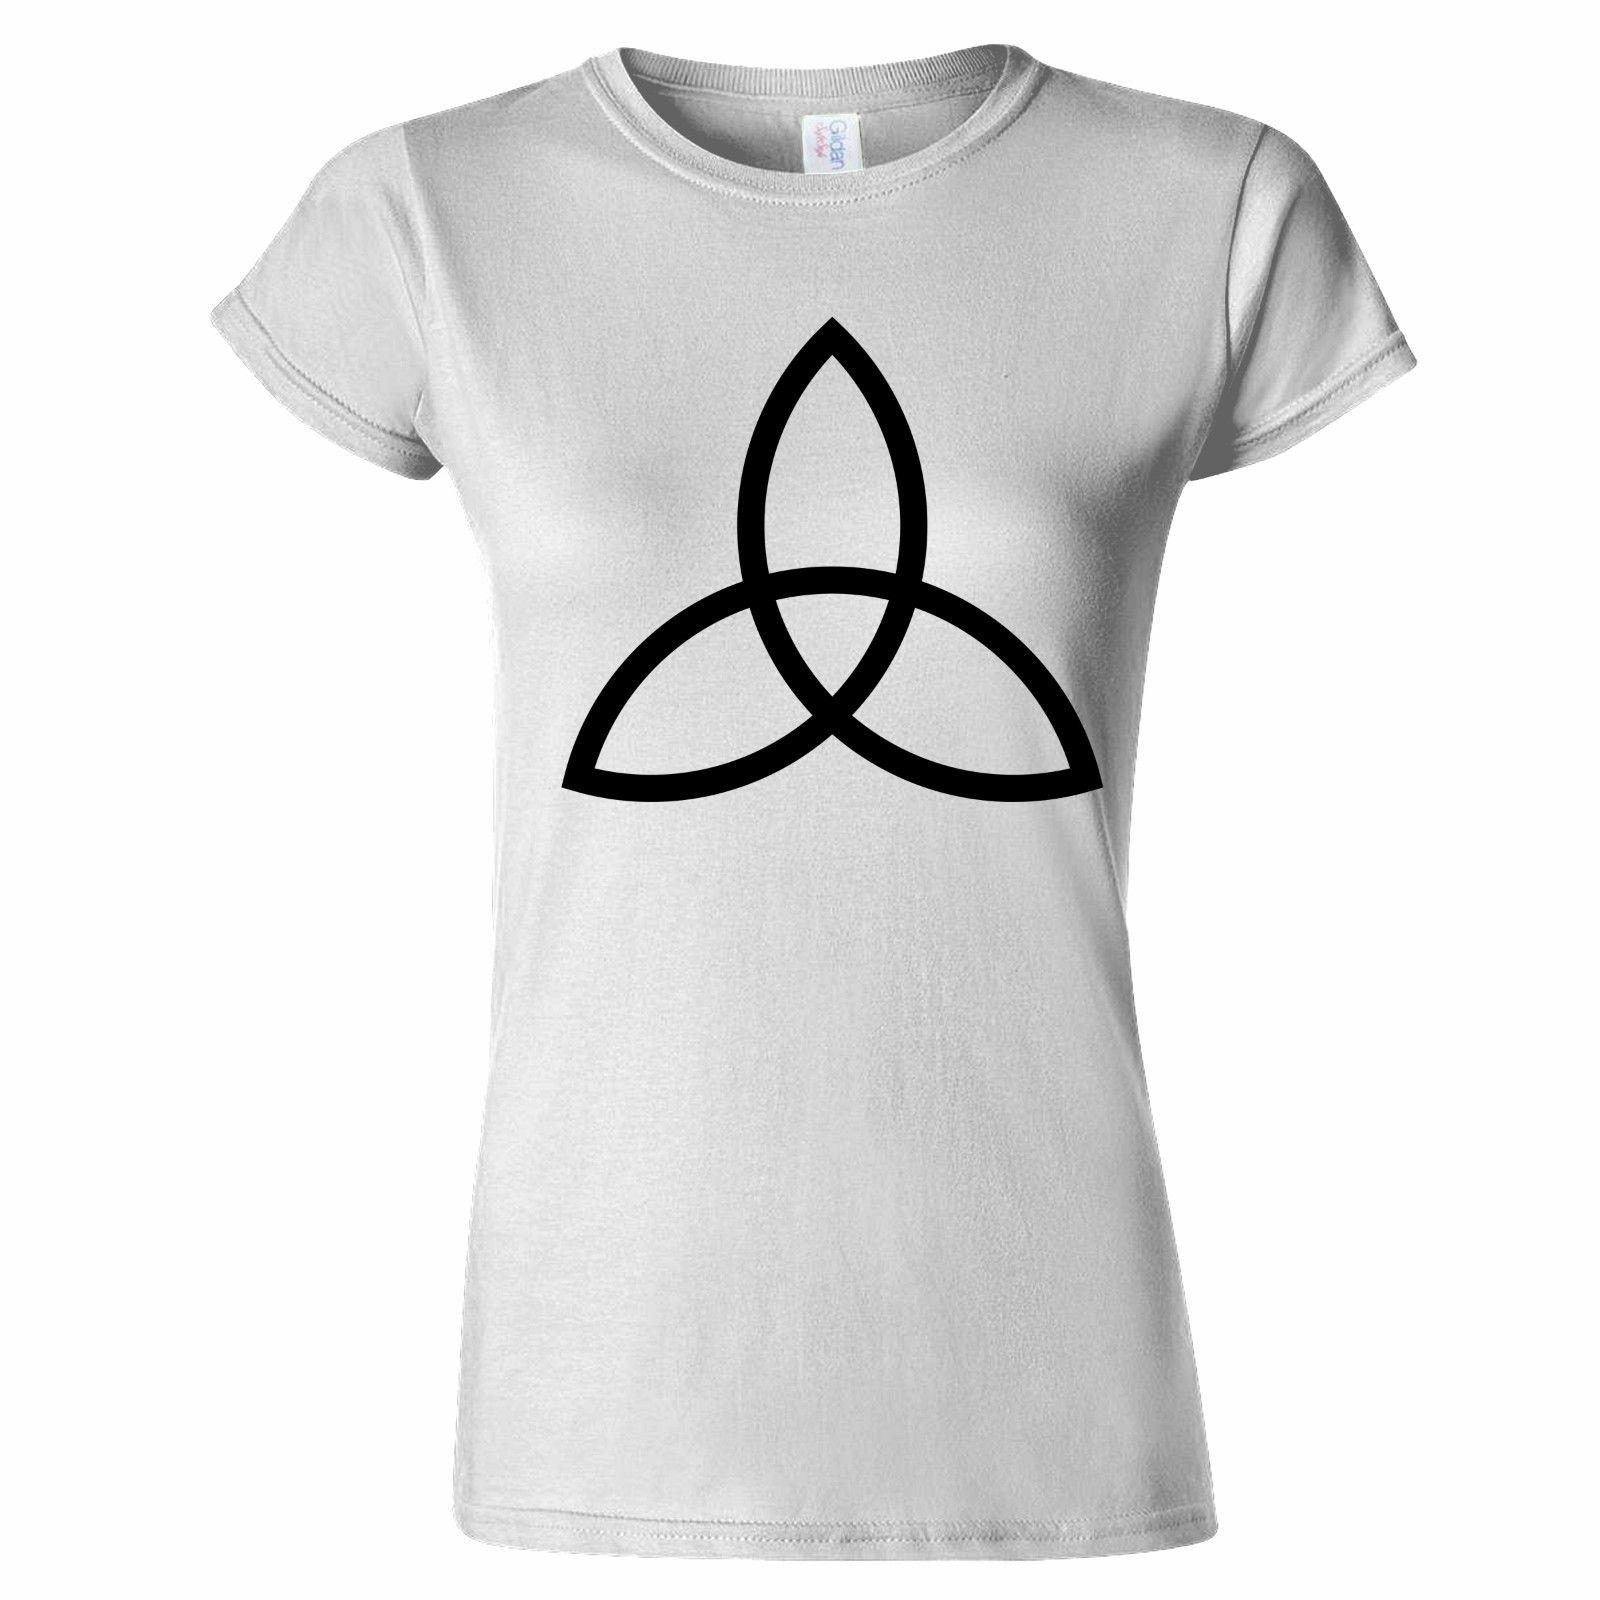 CELTIC TRIAD SYMBOL WOMENS T SHIRT RELIGION TRIQUETRA PAGAN SPANISH FAITH  EIRIDO Designs Shirts Interesting T Shirt Designs From Bangtidyclothing 4366113d64